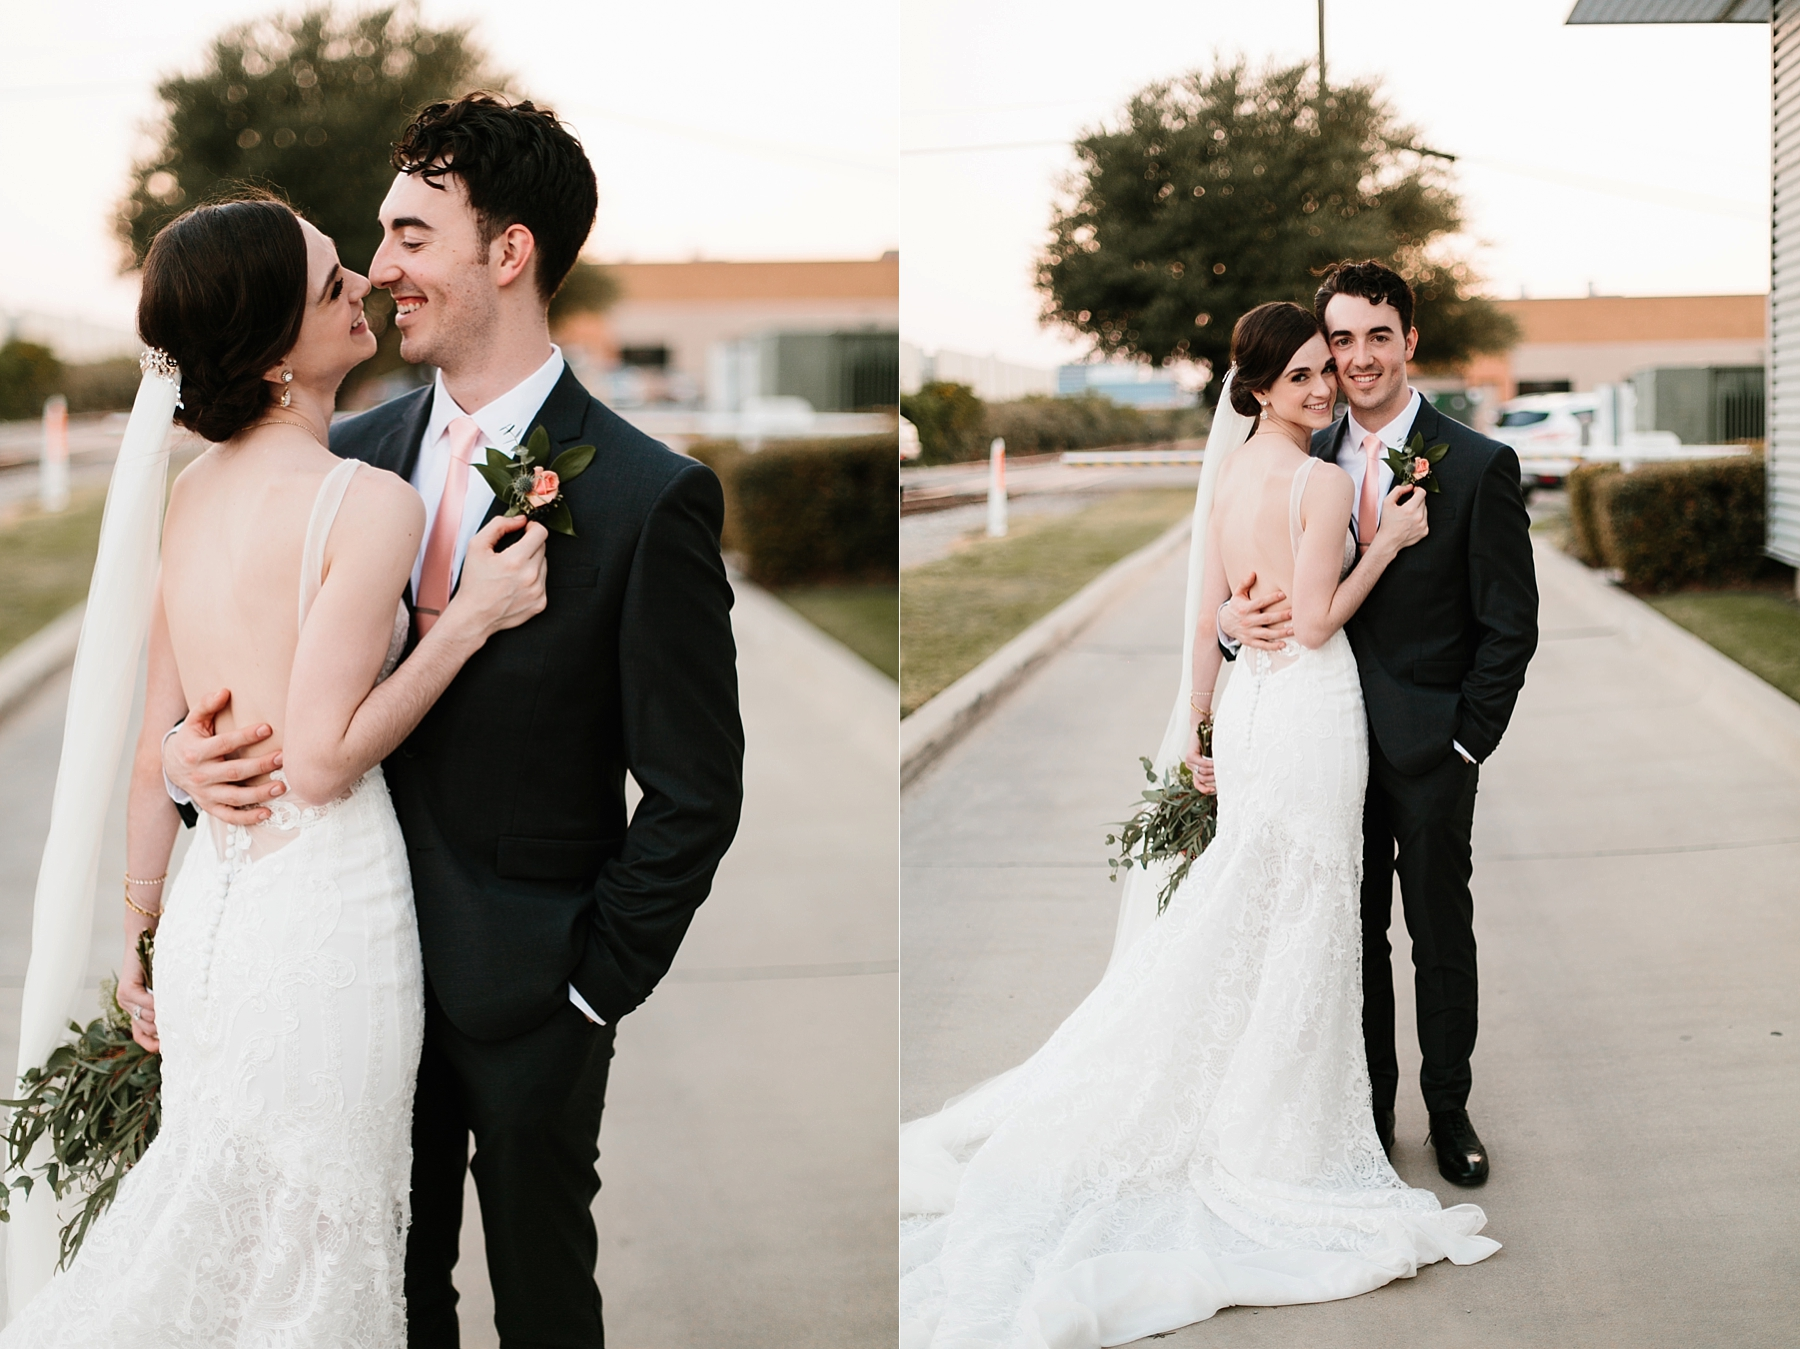 Emily + Caleb _ an elegant, intentional, industrial style wedding with navy + gold accents at 6500 in Dallas, TX by North Texas Wedding Photographer Rachel Meagan Photography _ 129